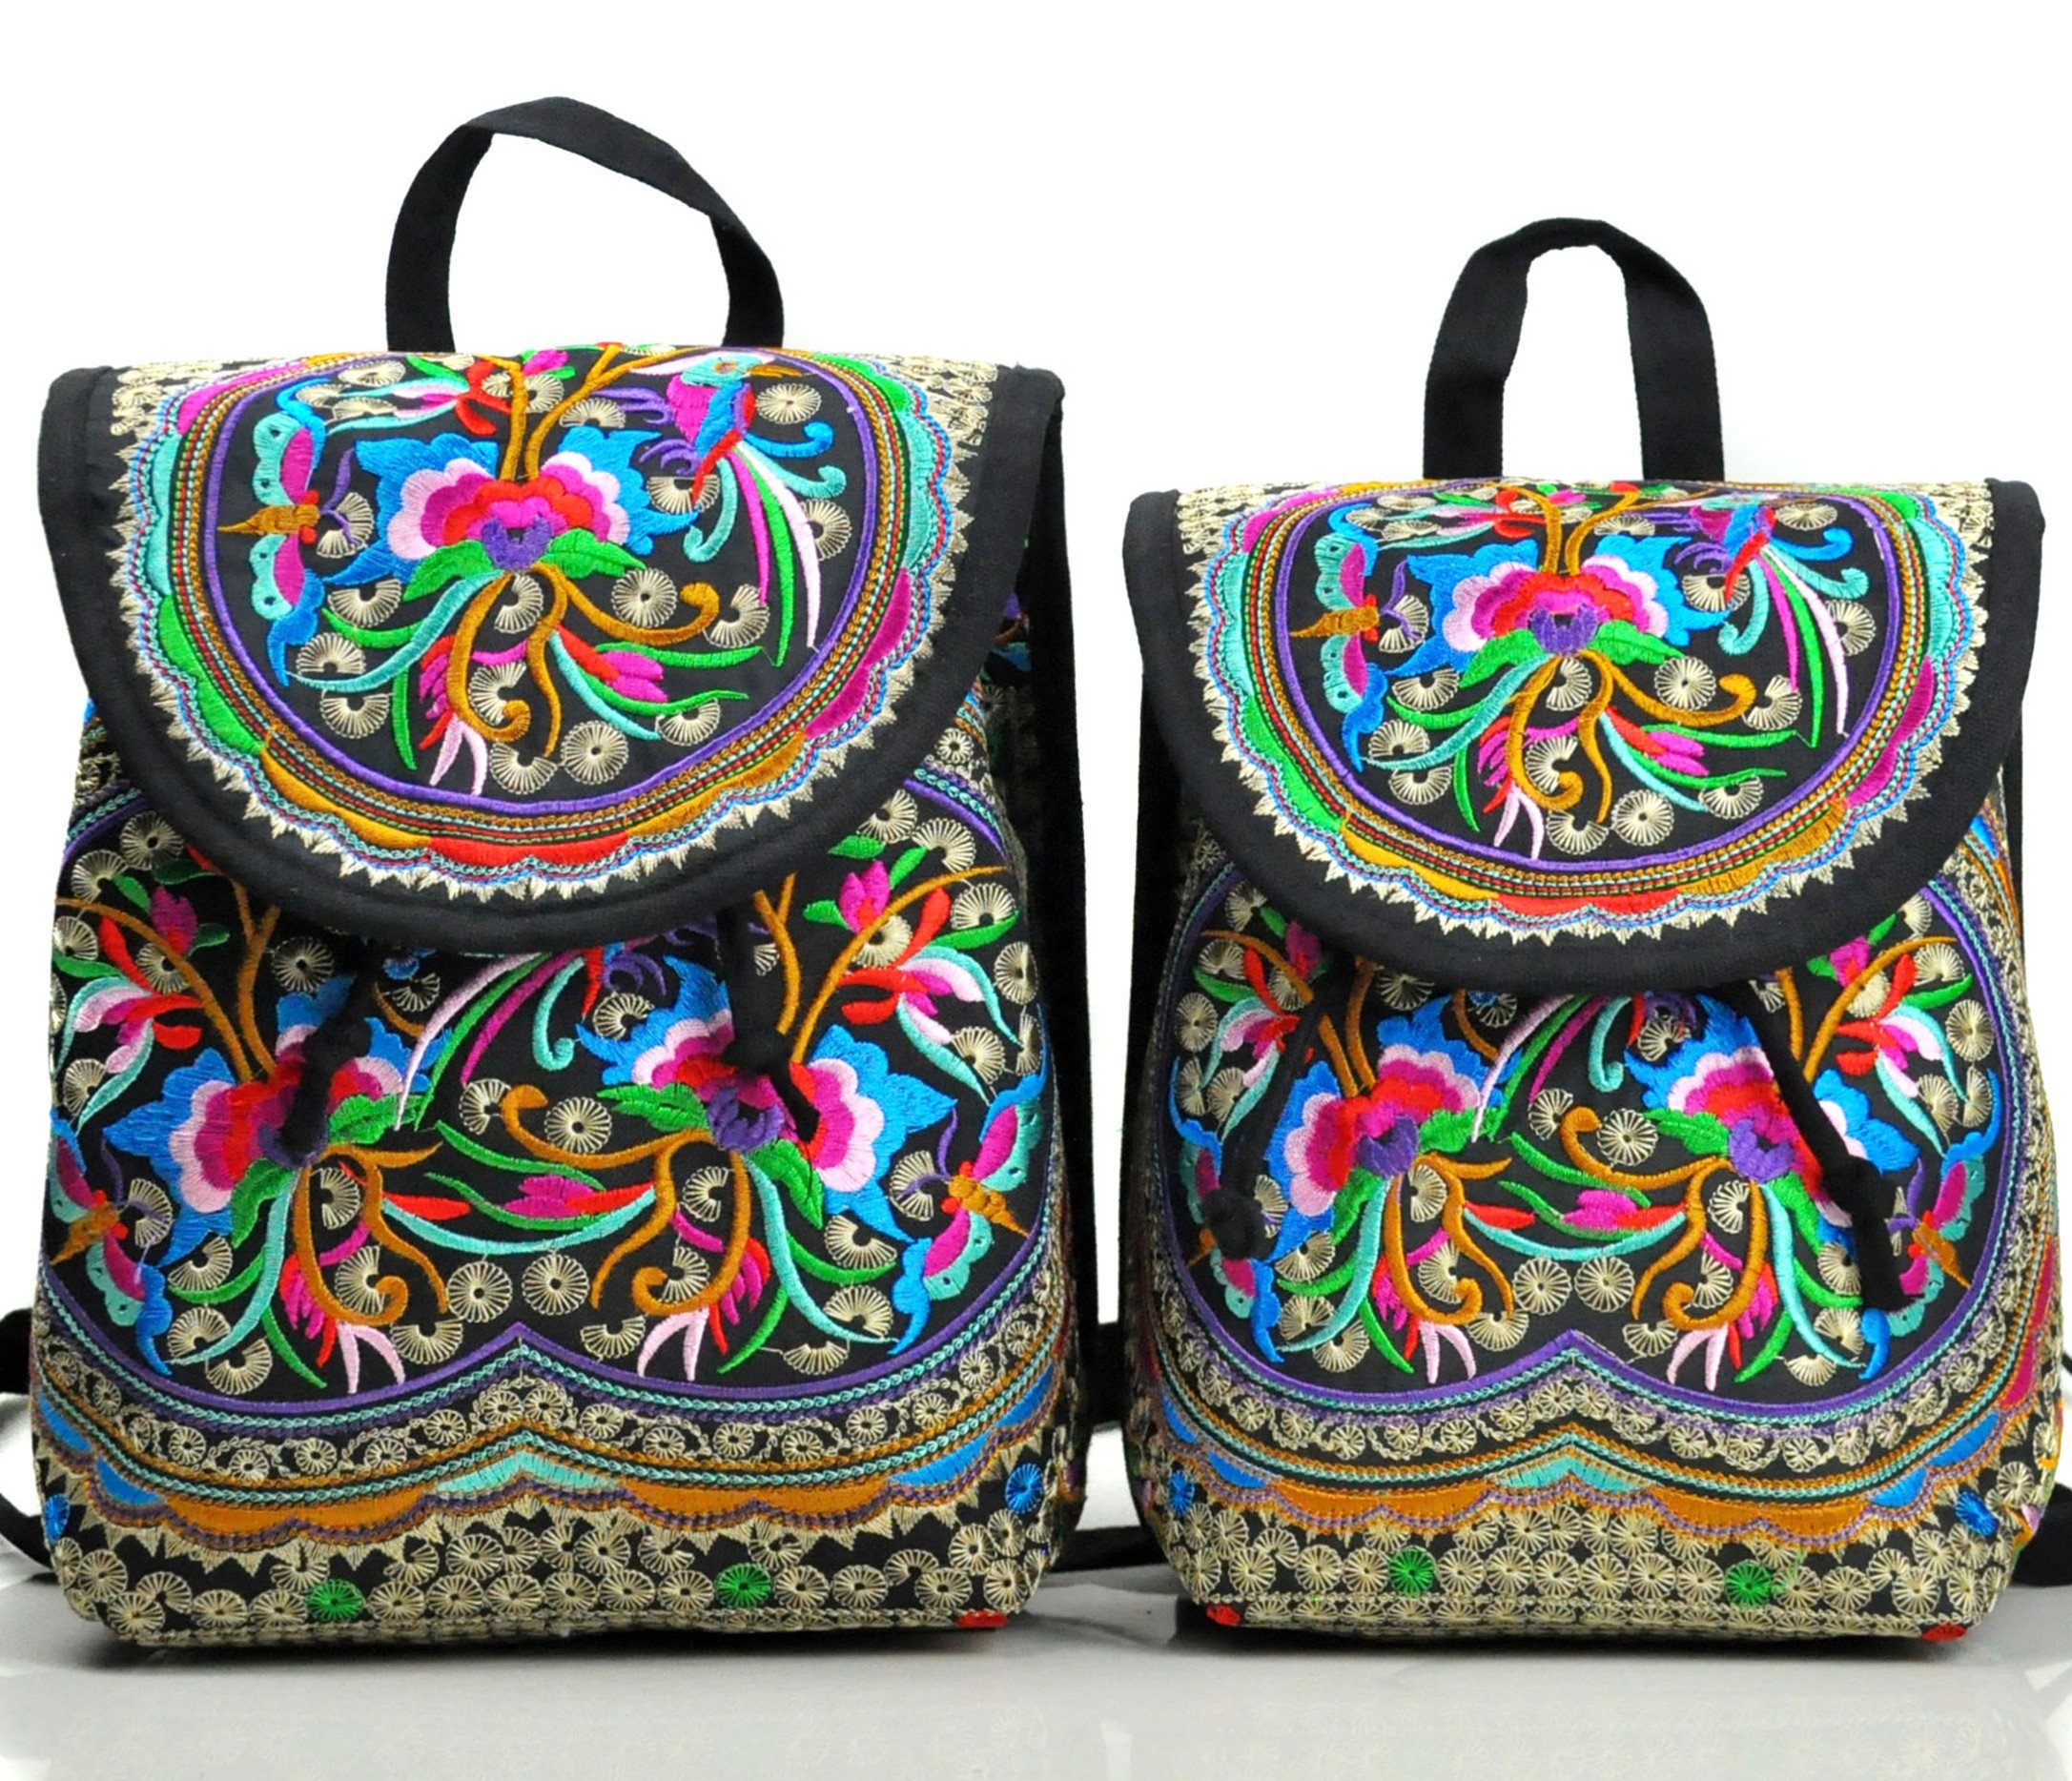 Goodhan Embroidery Backpack for Women Girls, 2 Pack Shoulders Bag for Mom and Child